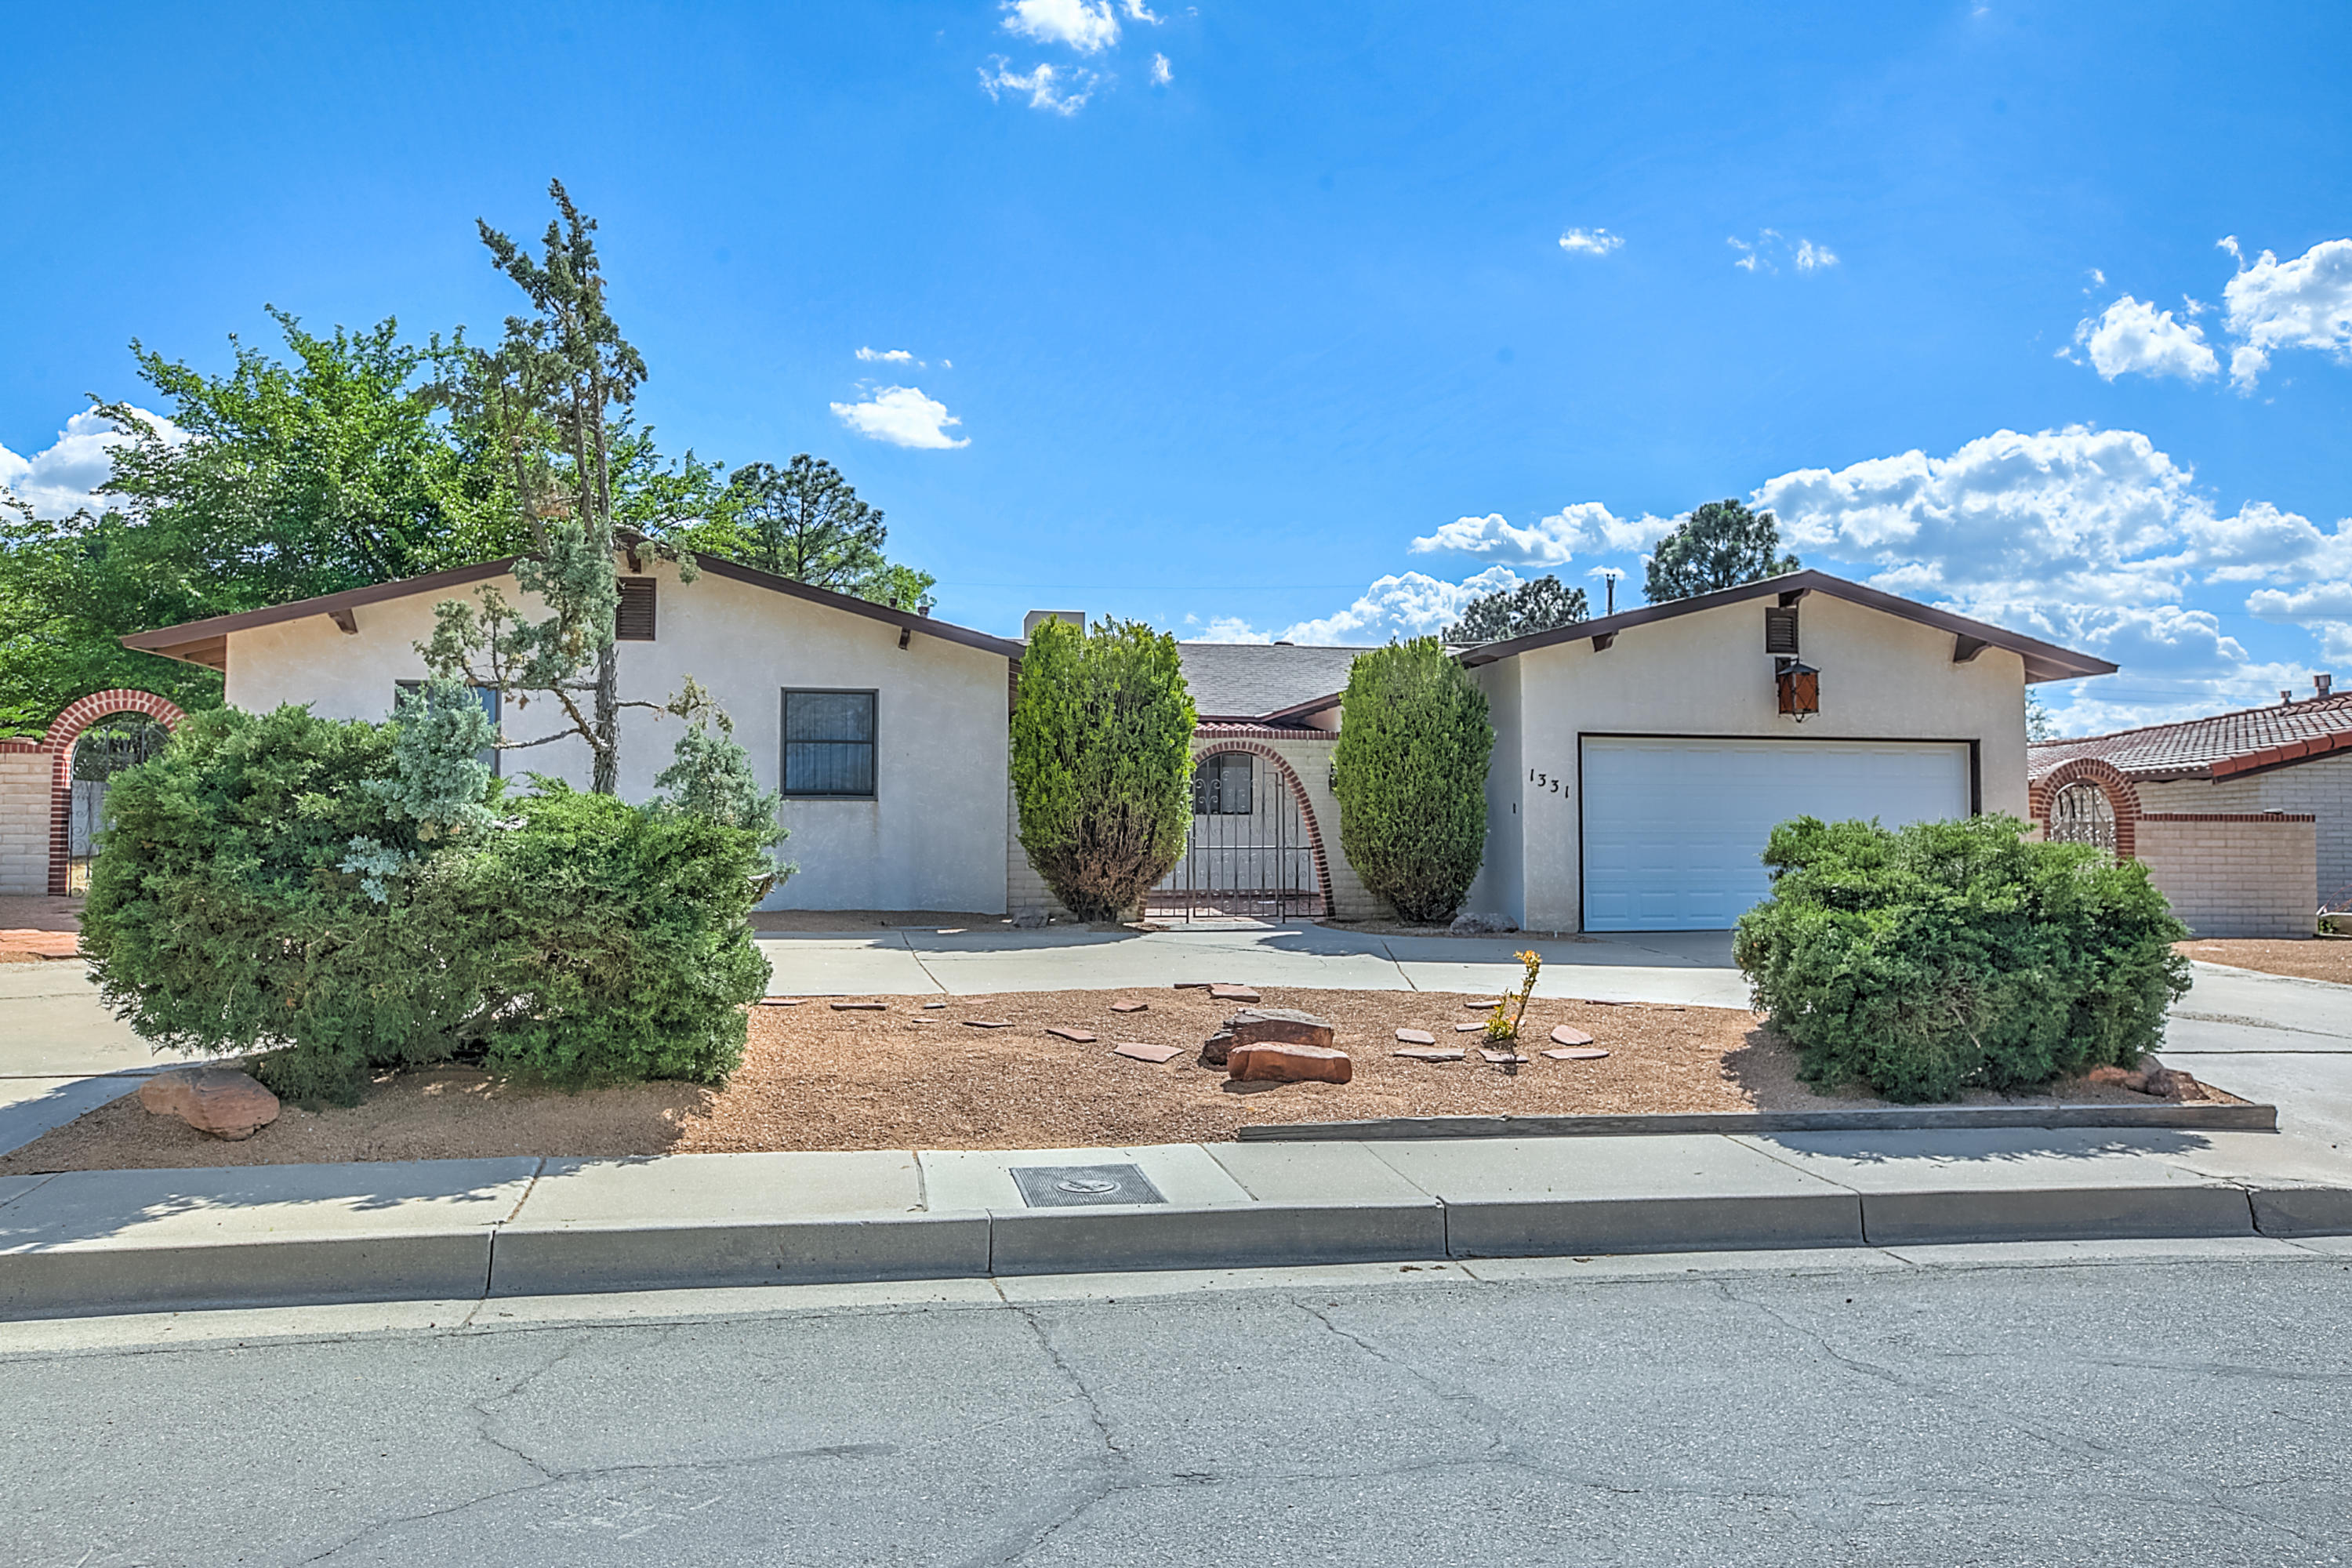 1331 Hertz Drive SE Albuquerque Home Listings - RE/MAX Elite Albuquerque Real Estate